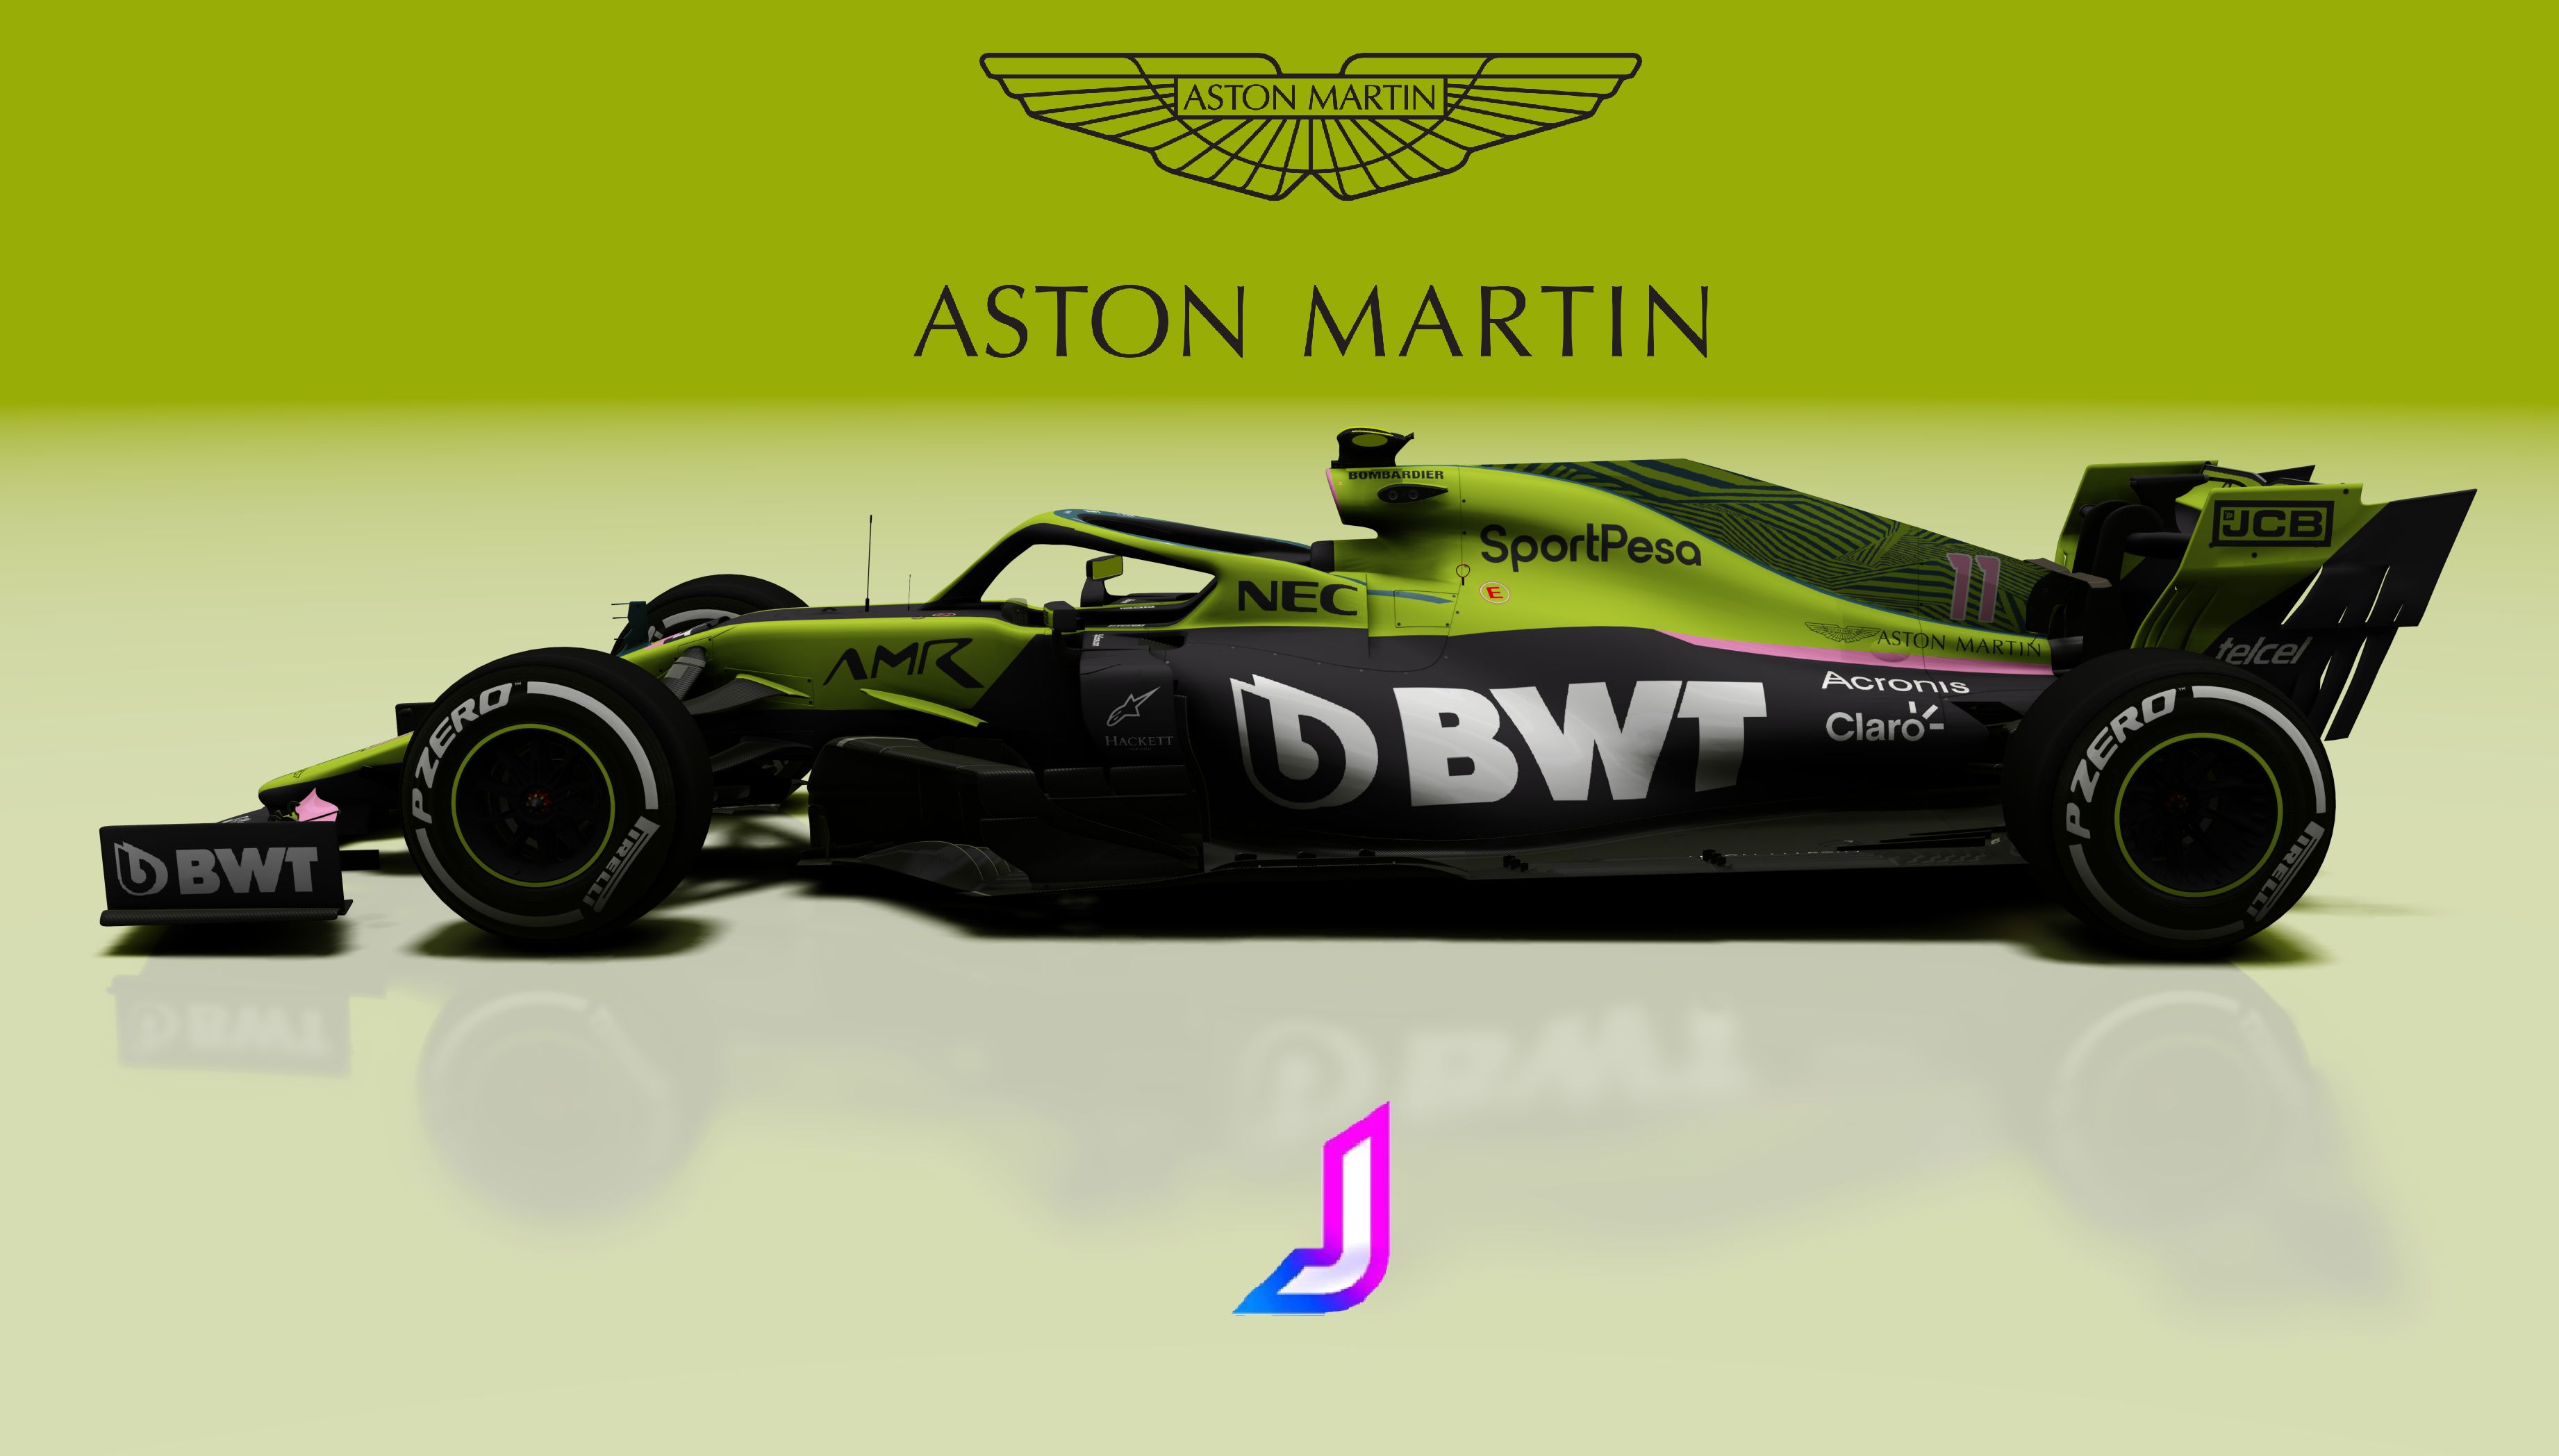 Aston Martin F1 Team Racedepartment